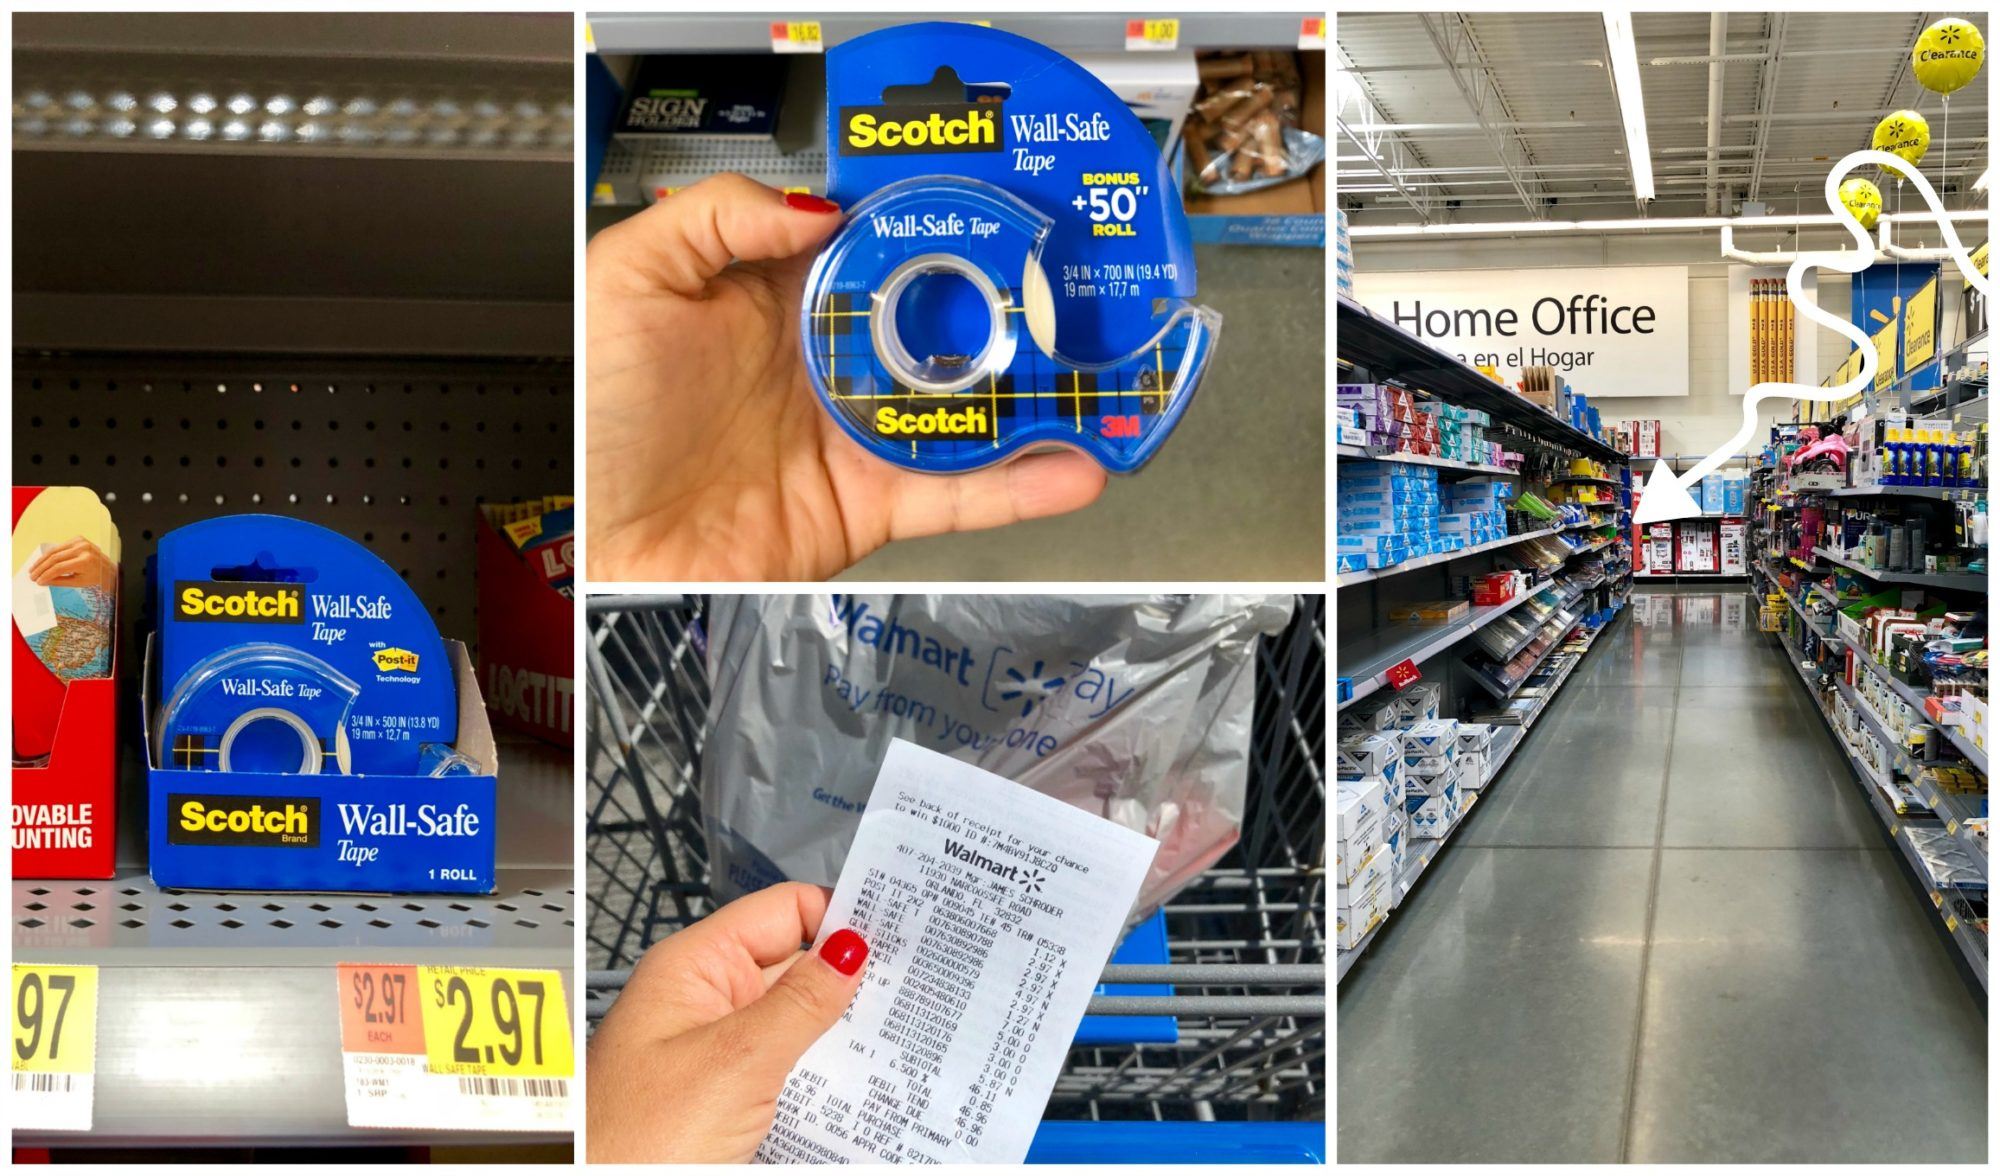 Scotch® Wall-Safe Tape at Walmart